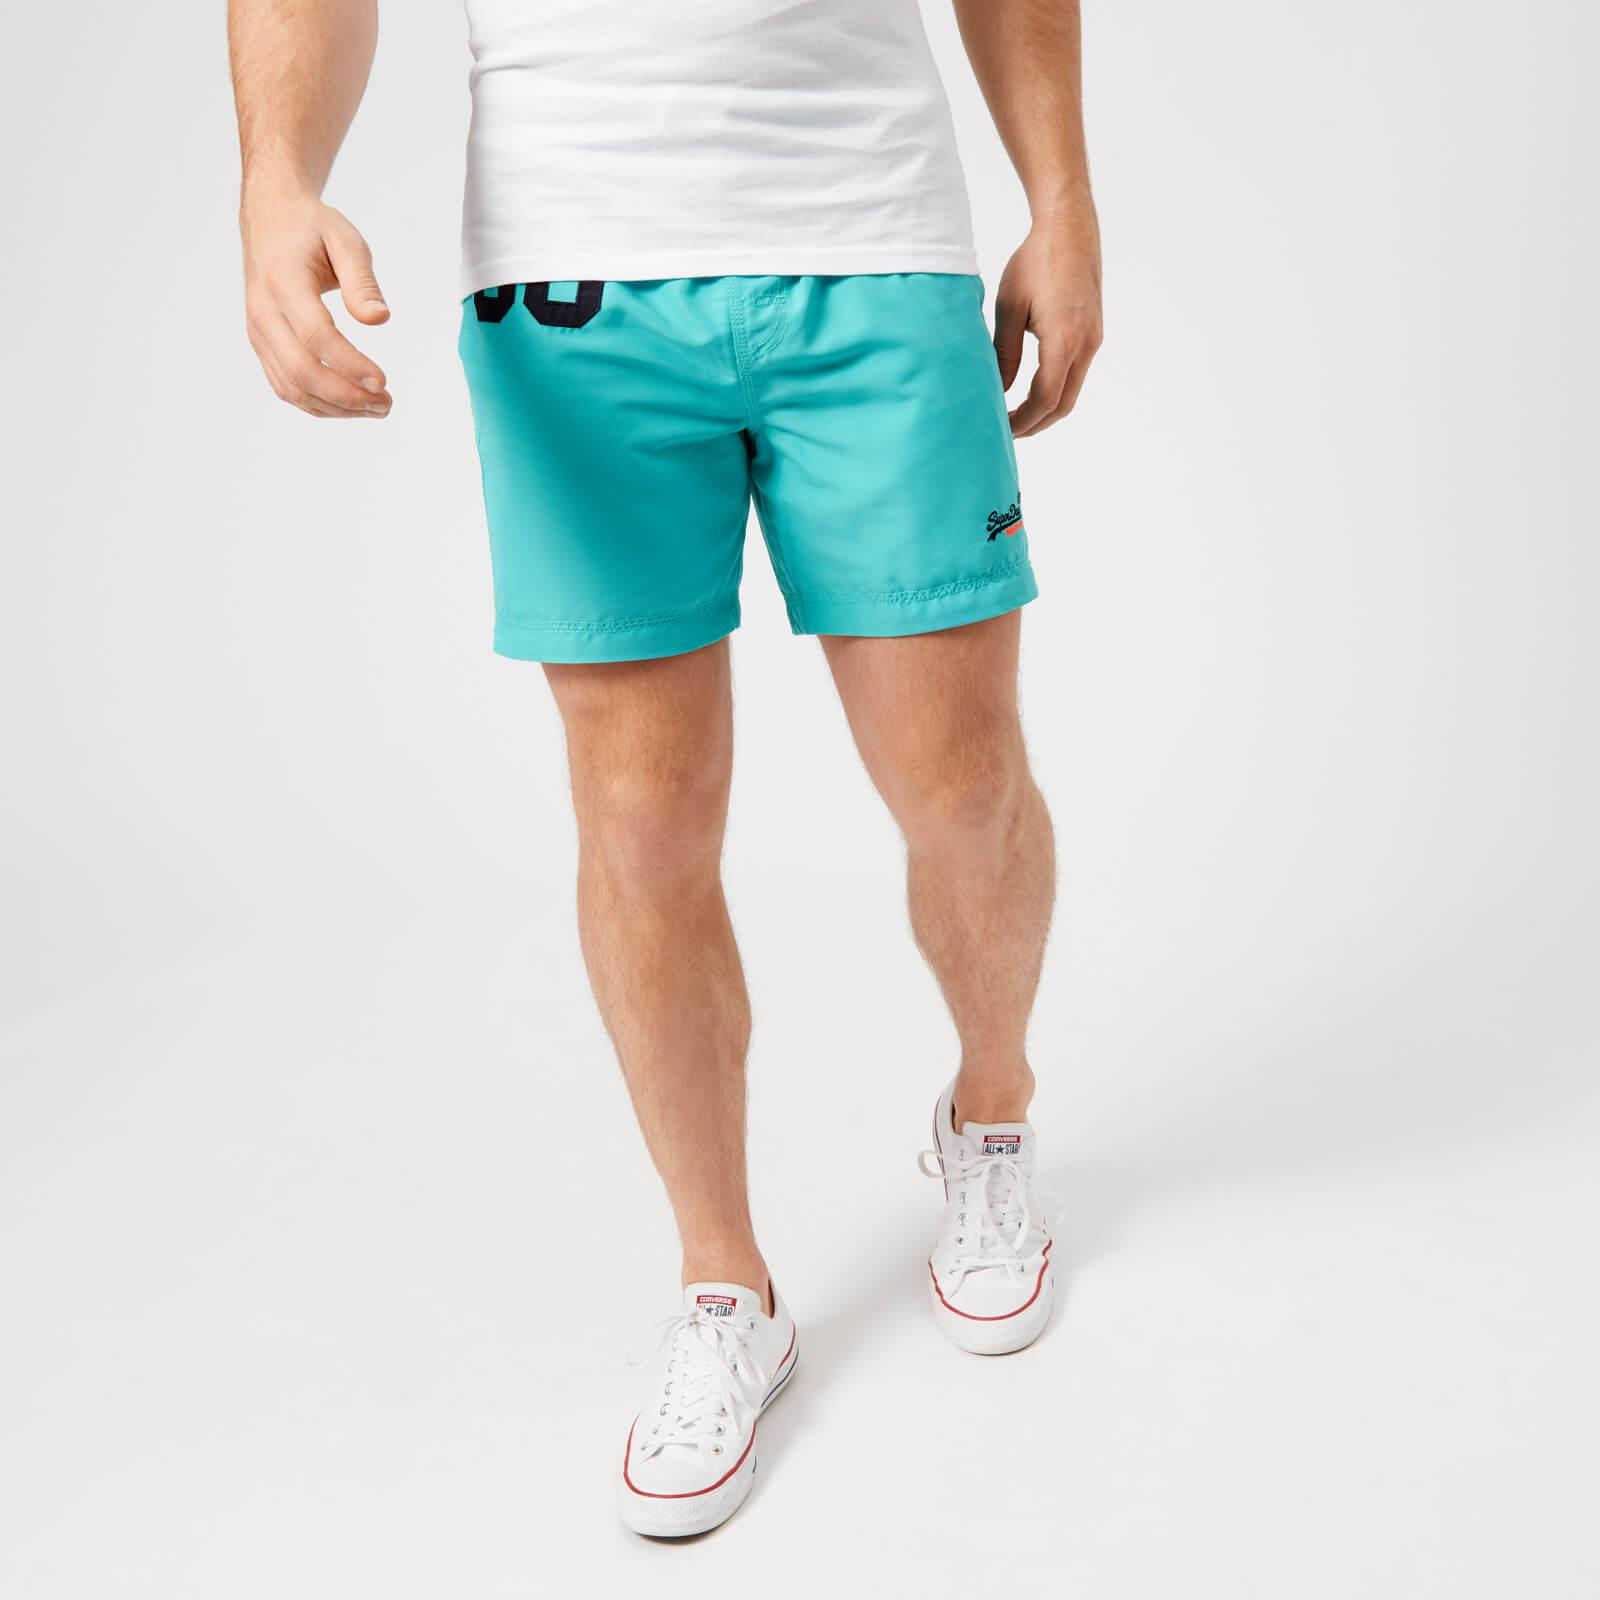 dca44f3950 Lyst - Superdry Water Polo Swim Shorts in Blue for Men